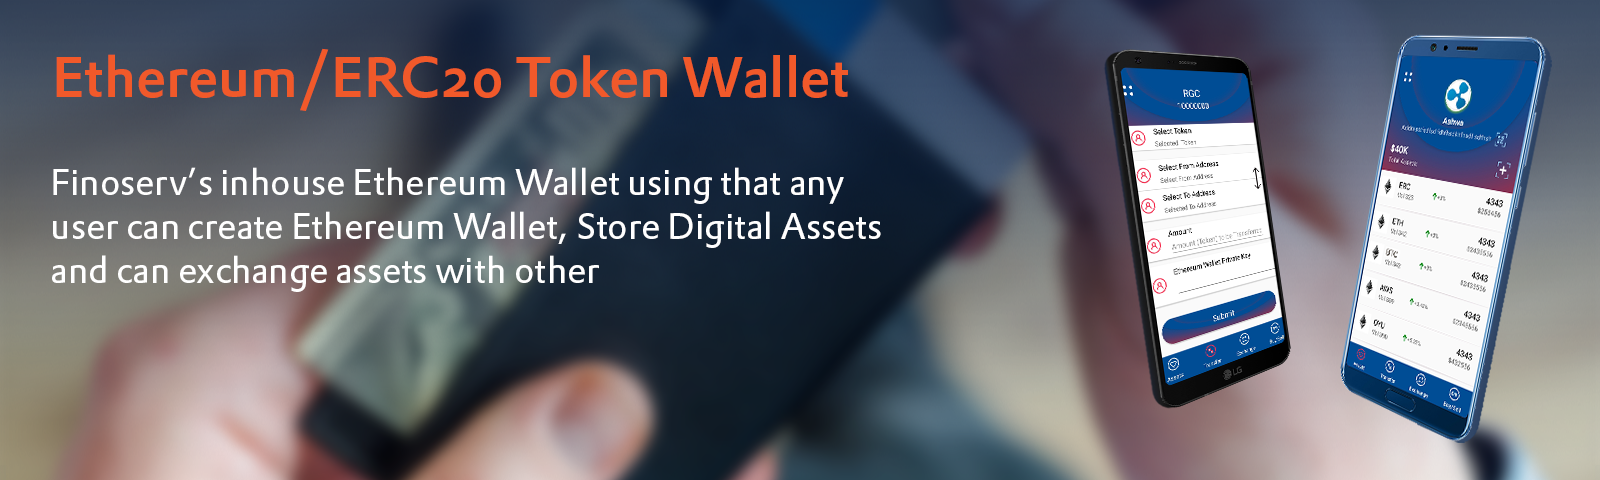 Ethereum/ERC20 Token Wallet